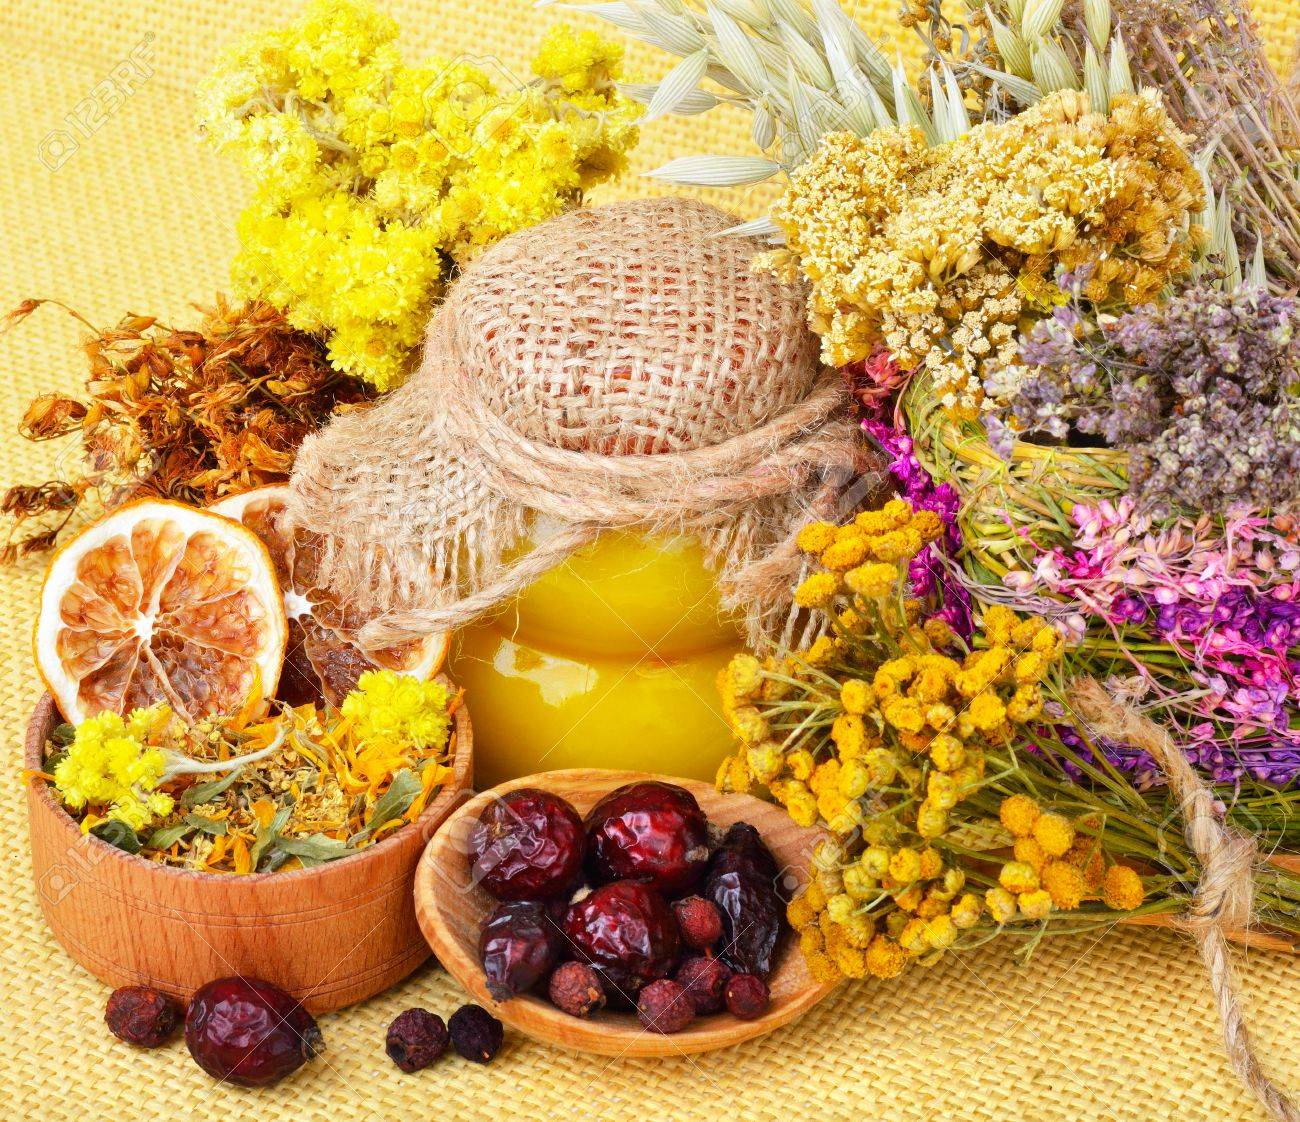 Medicinal herbs with honey, calendula, oats, immortelle flower, tansy herb, wild rose, dried lemon. - 39604241